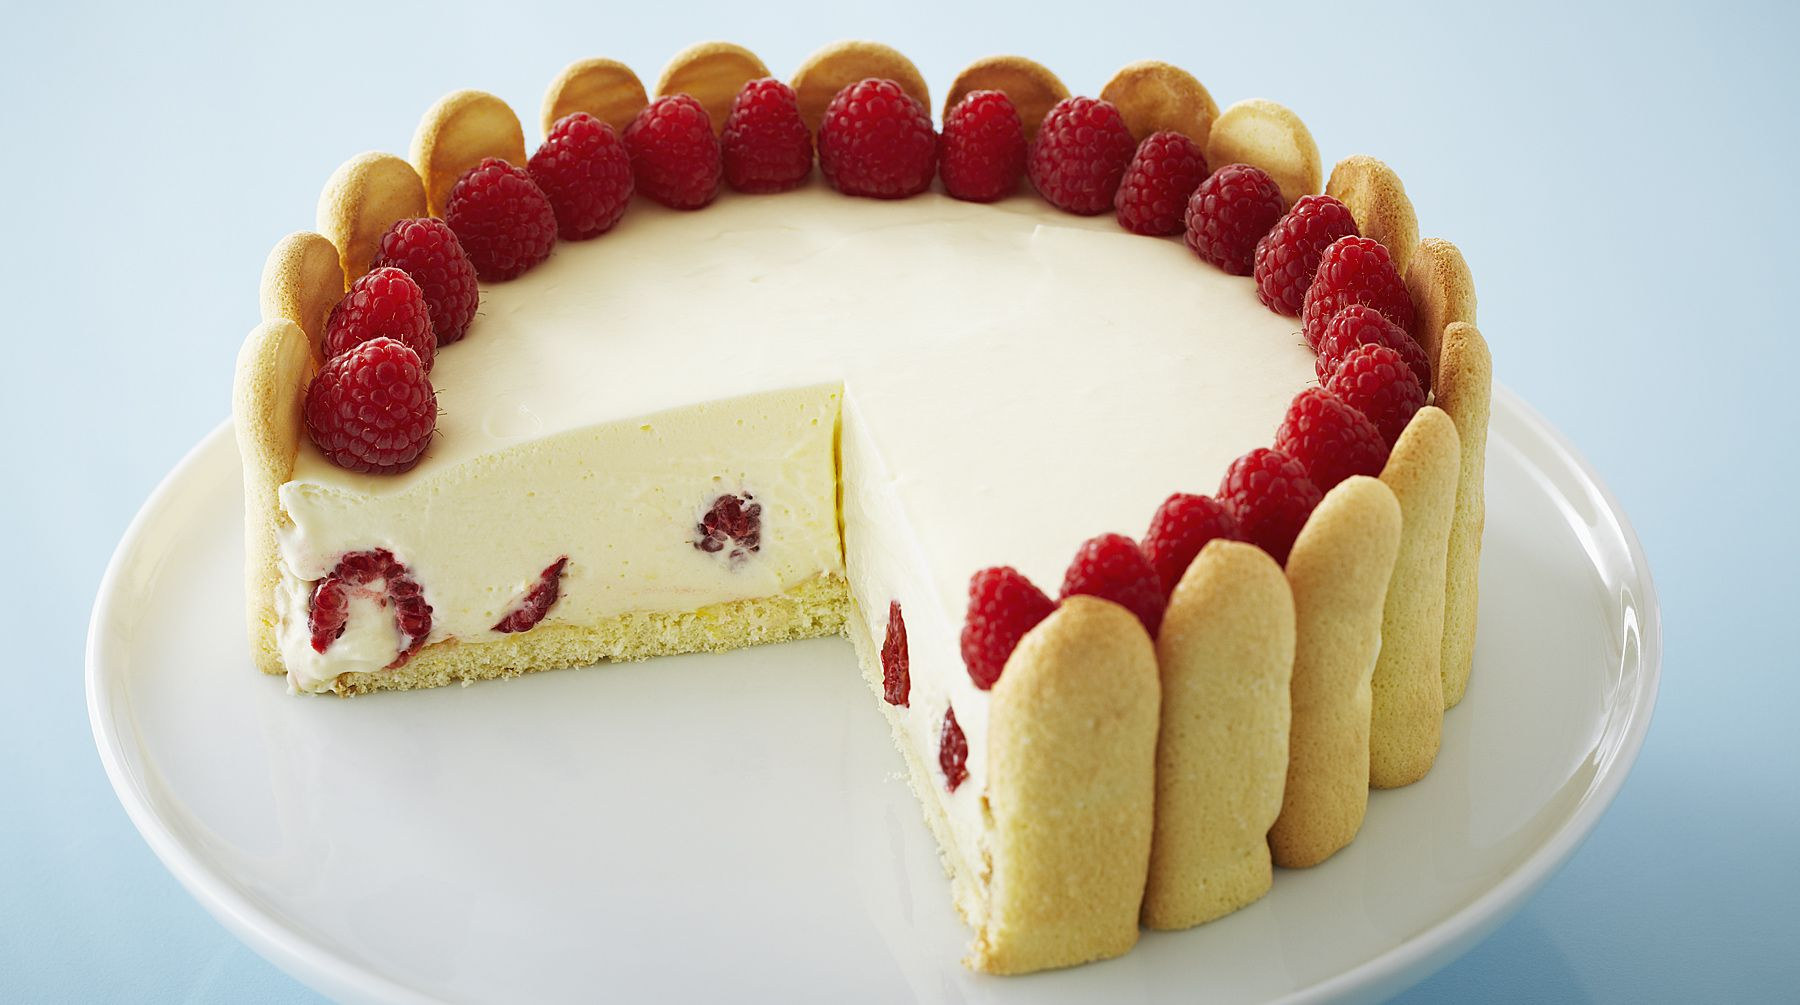 Bake with anna olson recipes elegant raspberry lemon torte asian bake with anna olson recipes elegant raspberry lemon torte asian food channel forumfinder Image collections